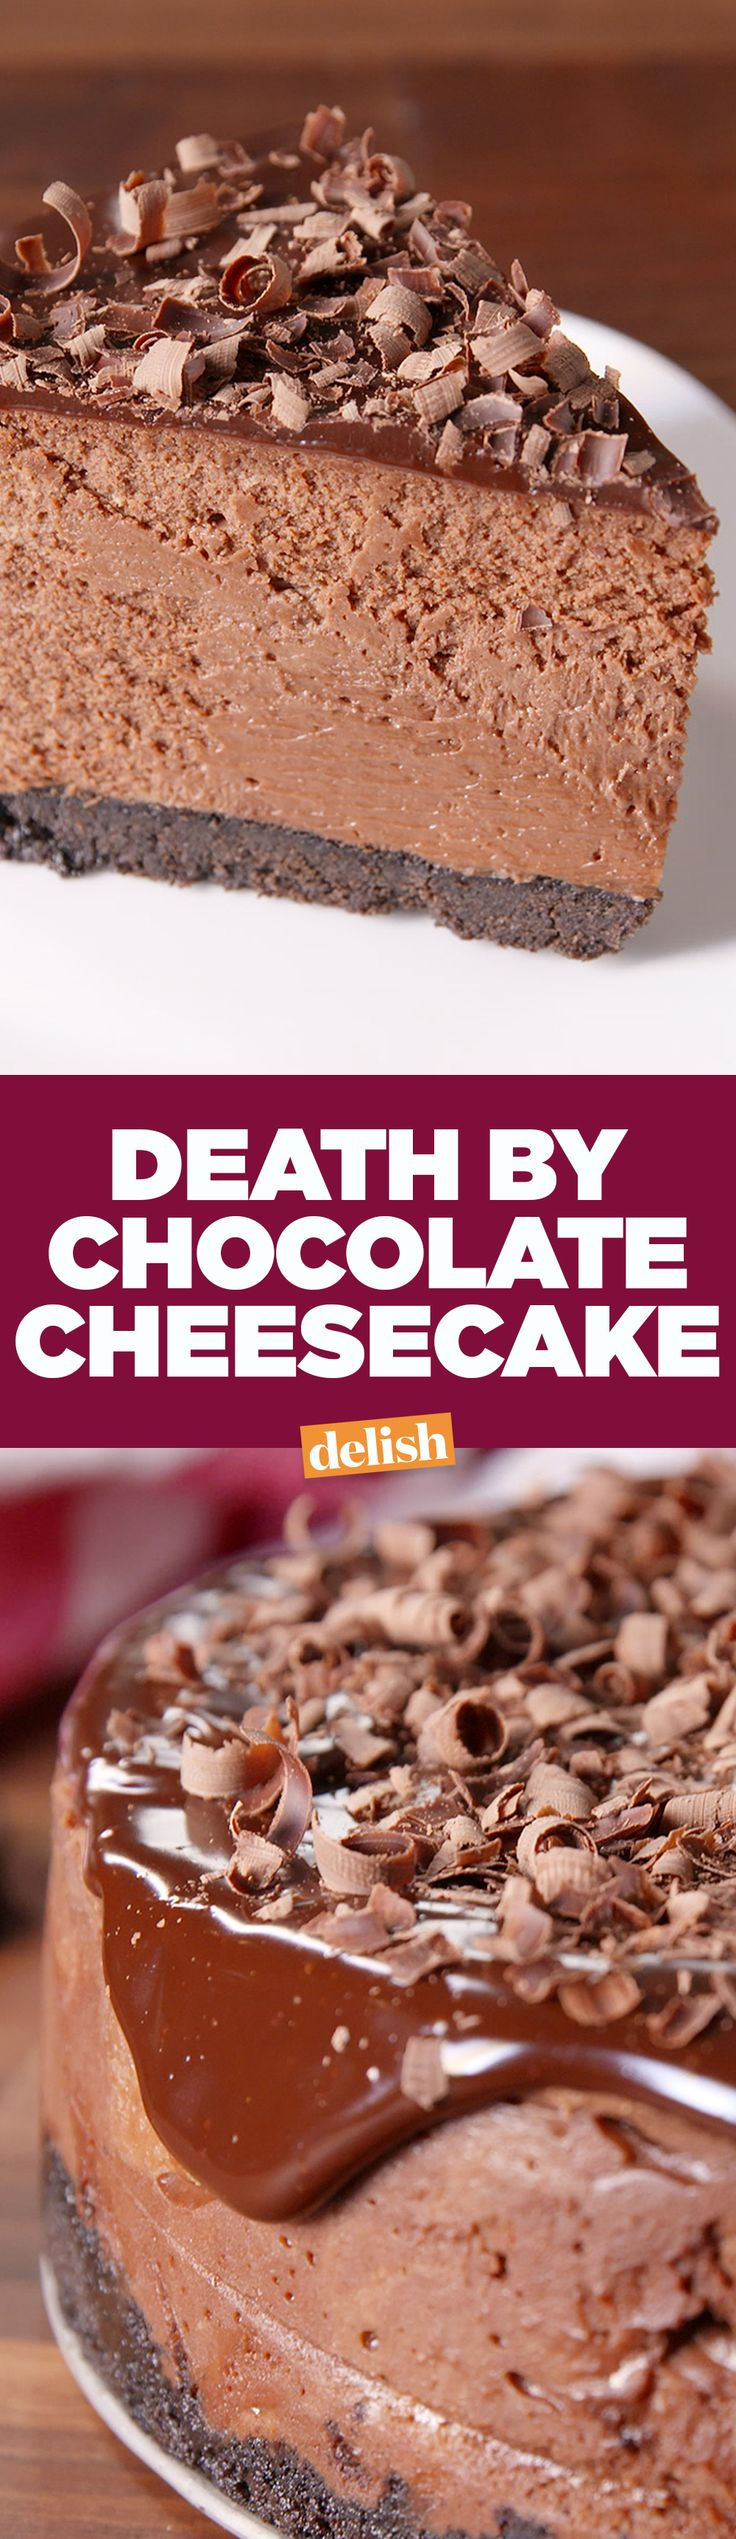 Best 25+ Chocolate cheesecake ideas only on Pinterest | No bake ...